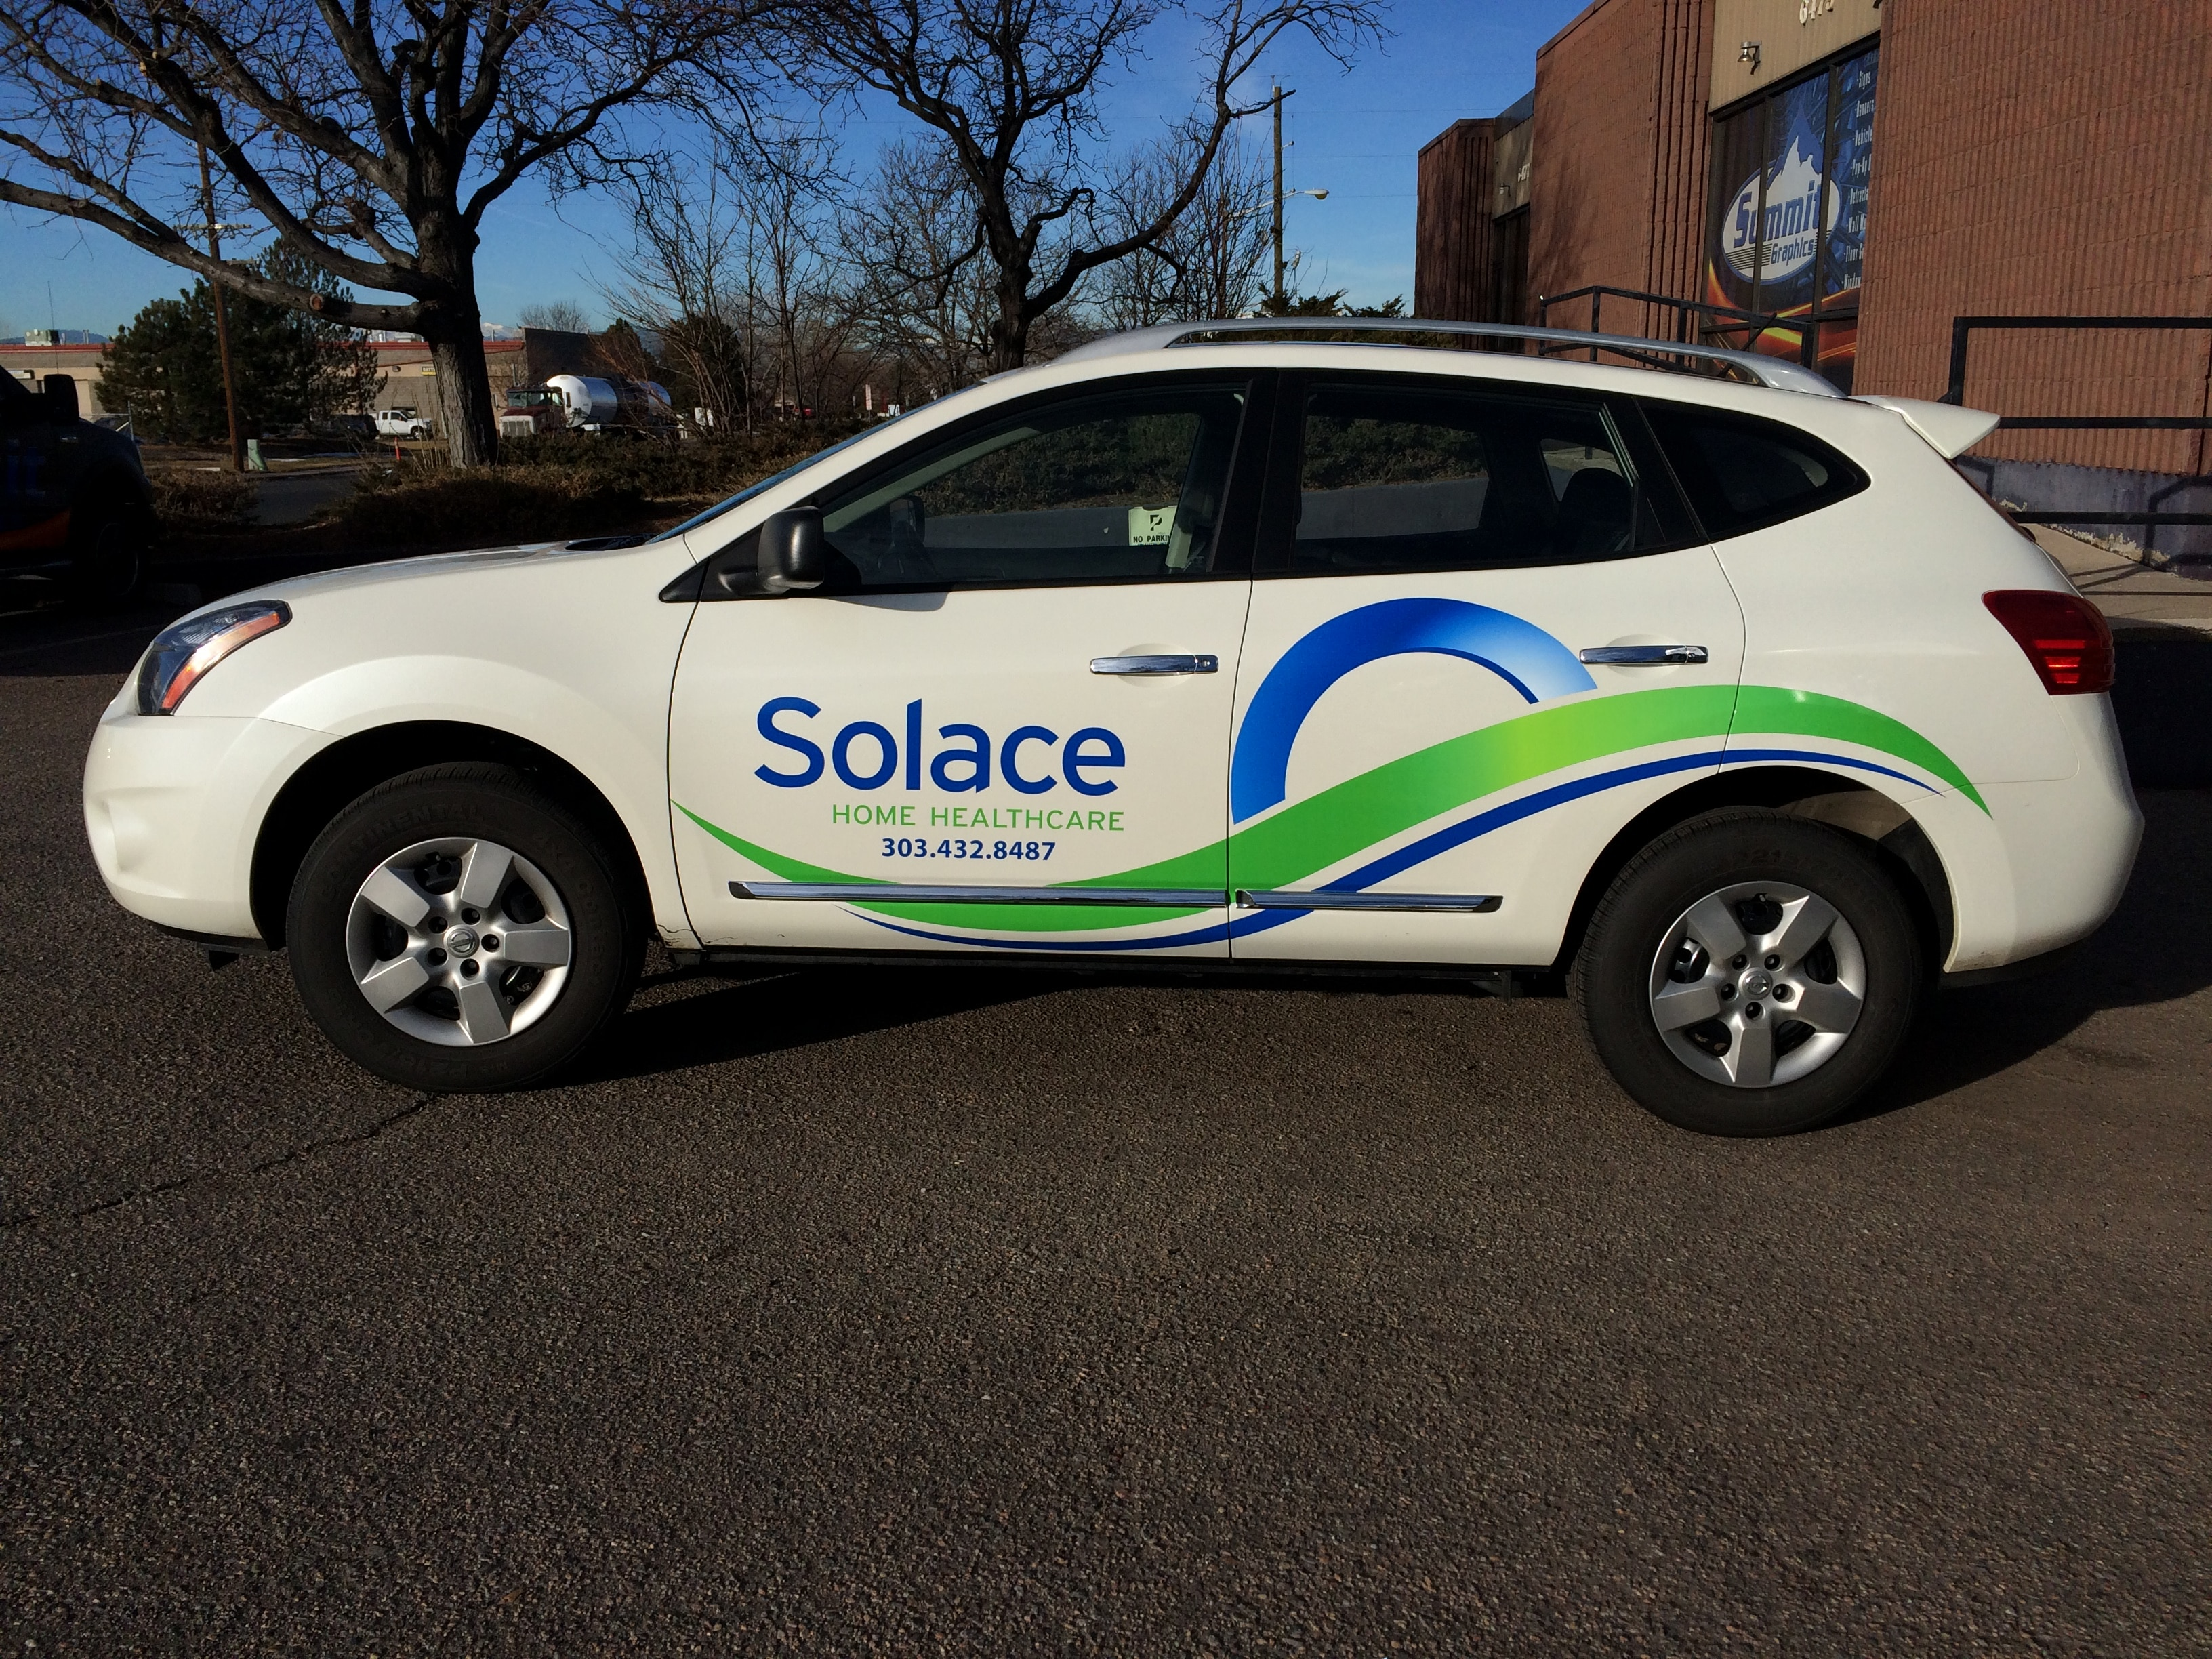 Solace Home Healthcare Partners With Enterprise Fleet Management To